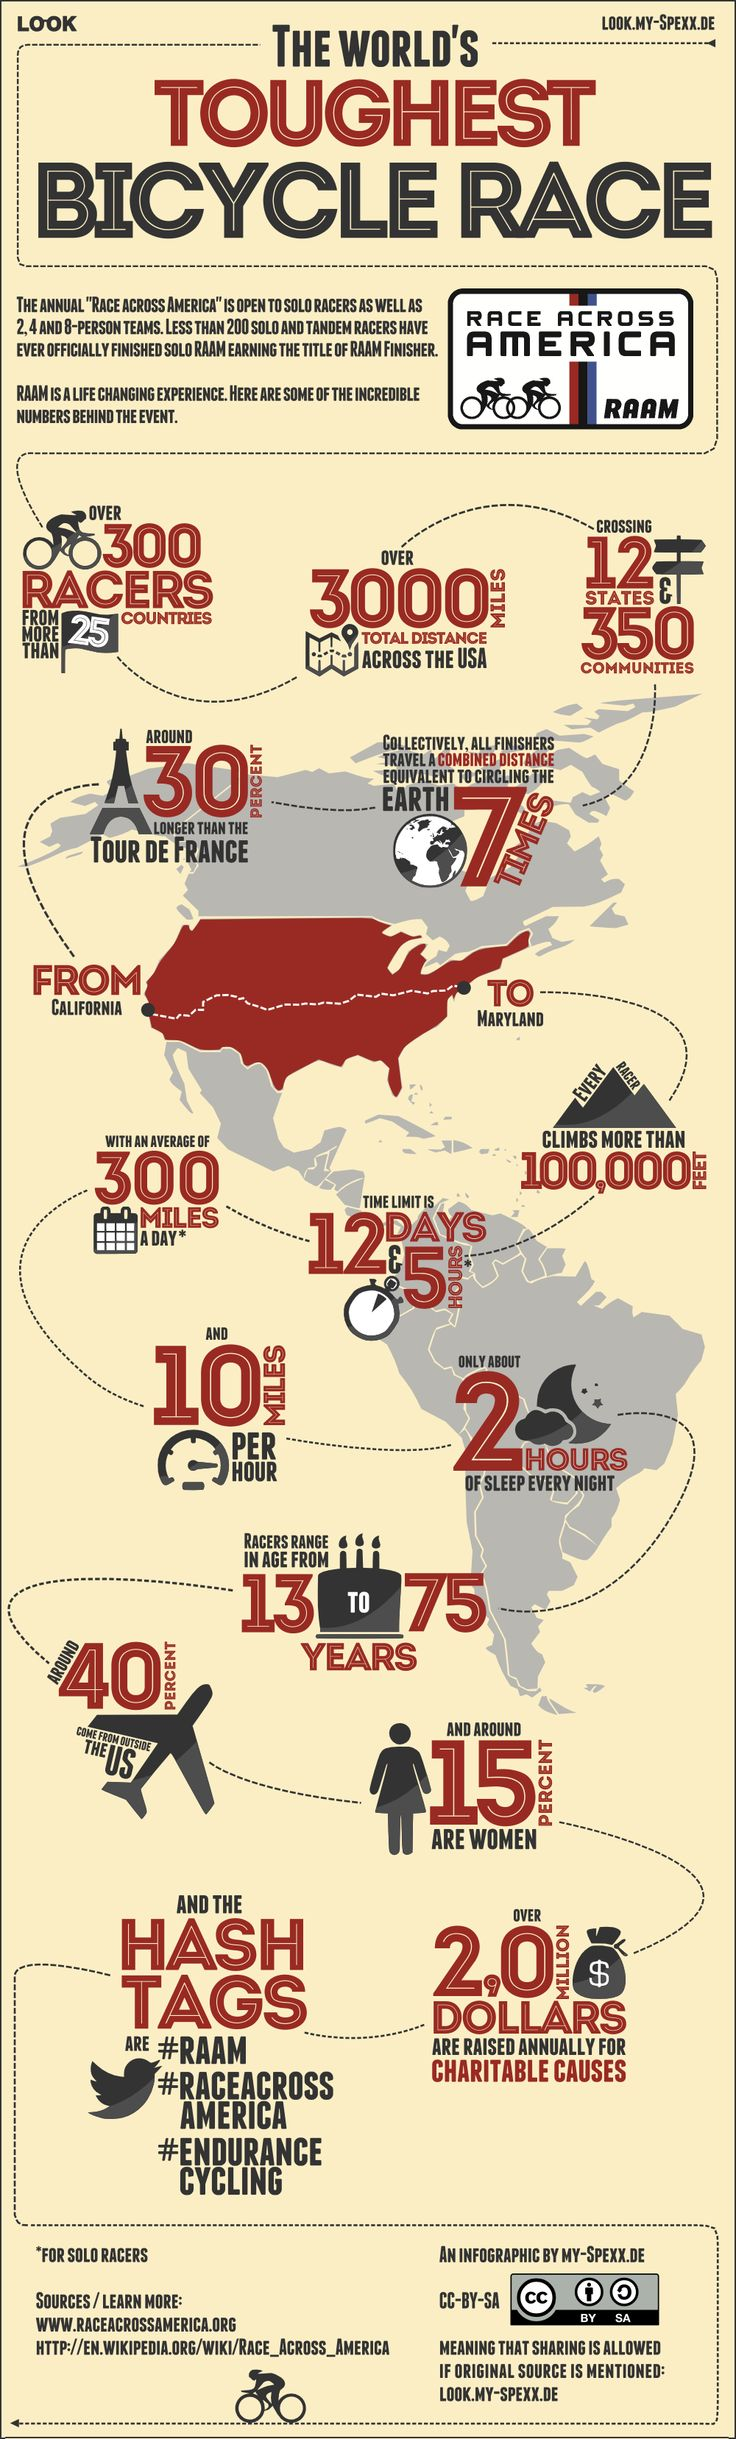 The #RAAM (Race Across America) is the world's toughest bicycle race. Check out our infographic with some of the incredible numbers and facts behind this event. #RAAM #RAAM15 #RaceAcrossAmerica #EnduranceCycling #Ultracycling